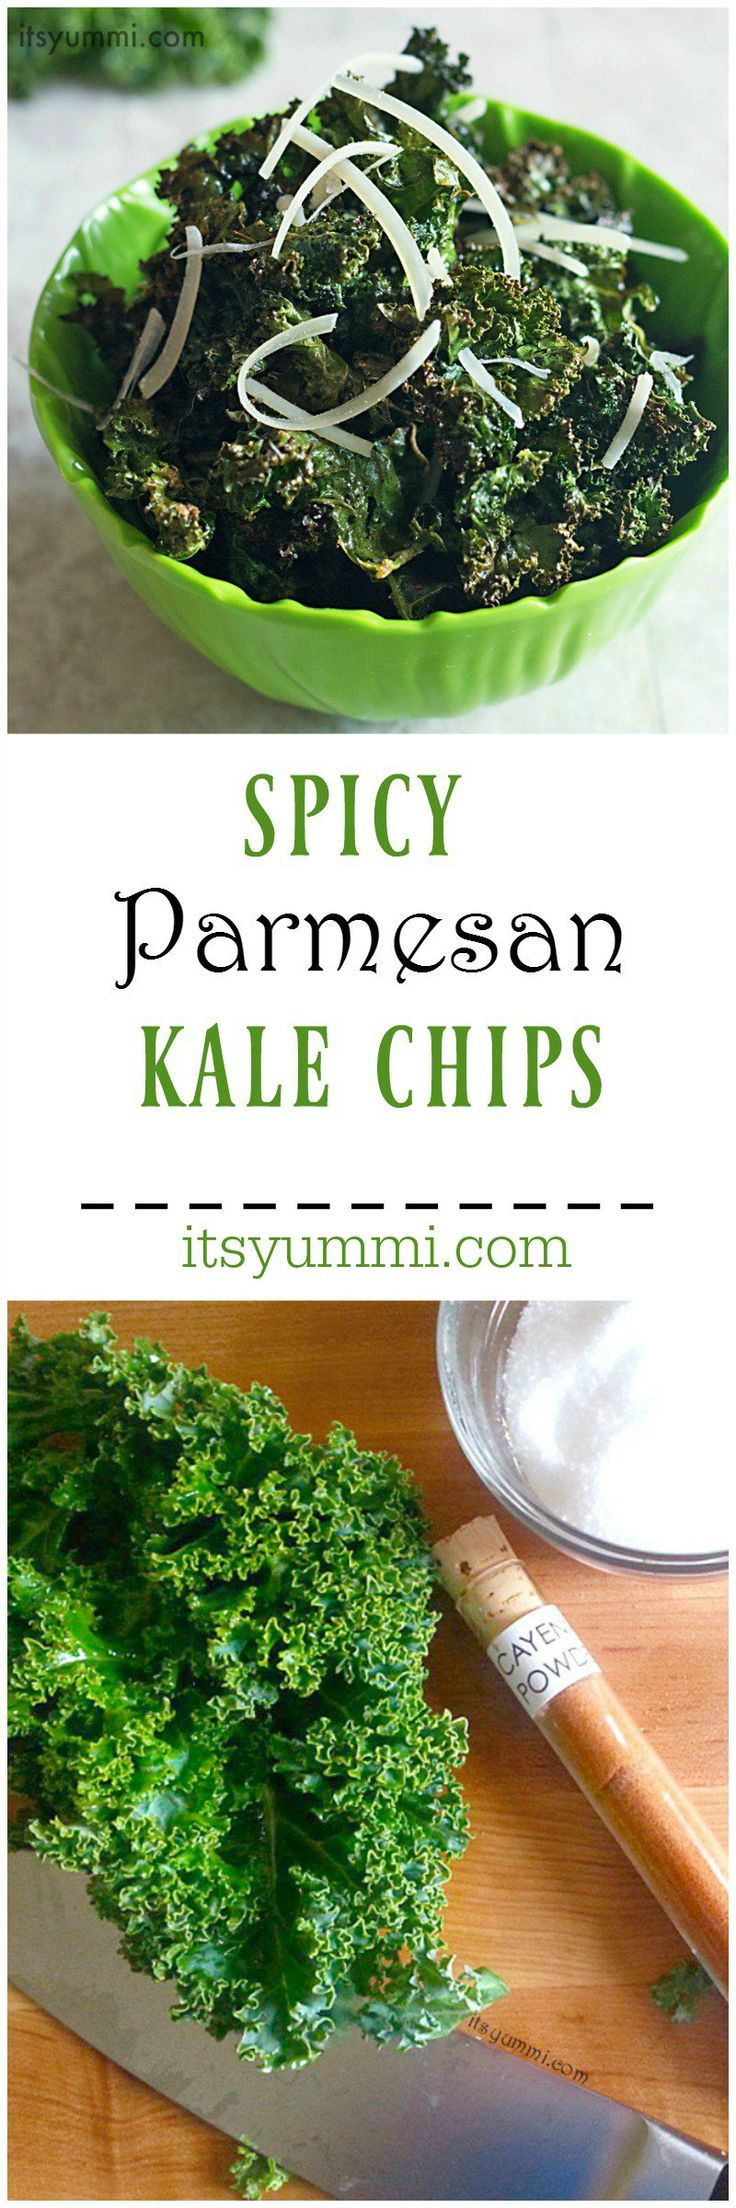 Spicy Parmesan Kale Chips - A healthy snack food that's perfect for game day snacking or after school snacks. Recipe on itsyummi.com